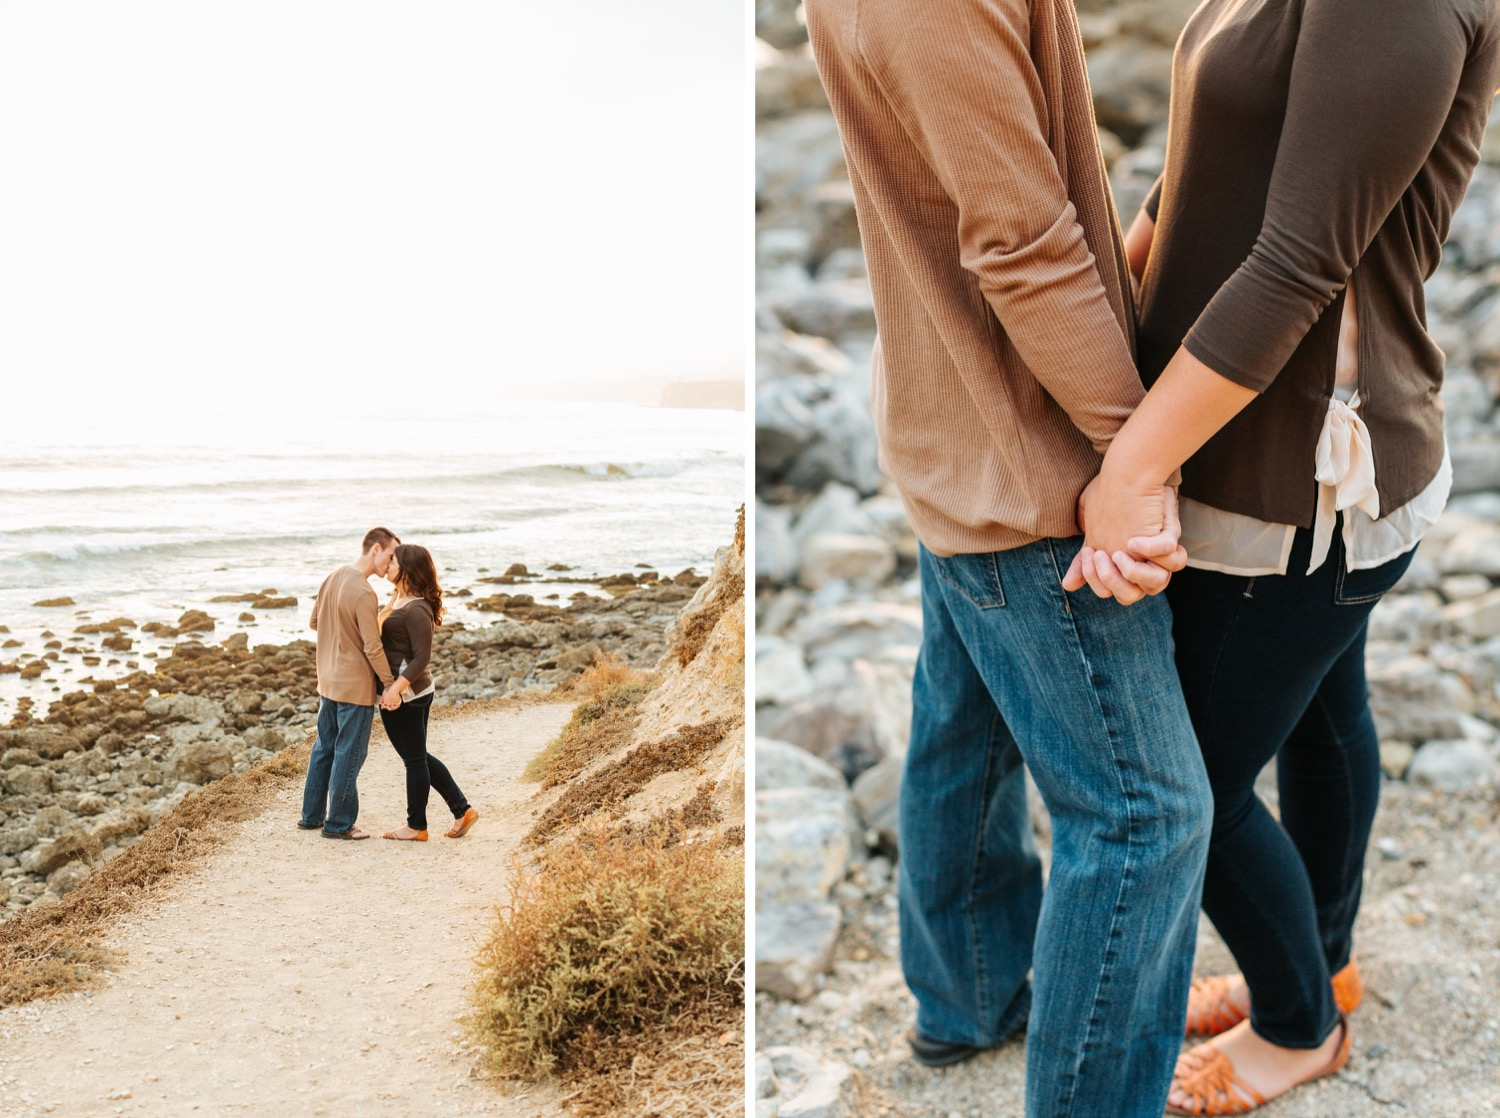 romantic-photos-at-the-beach-palos-verdes